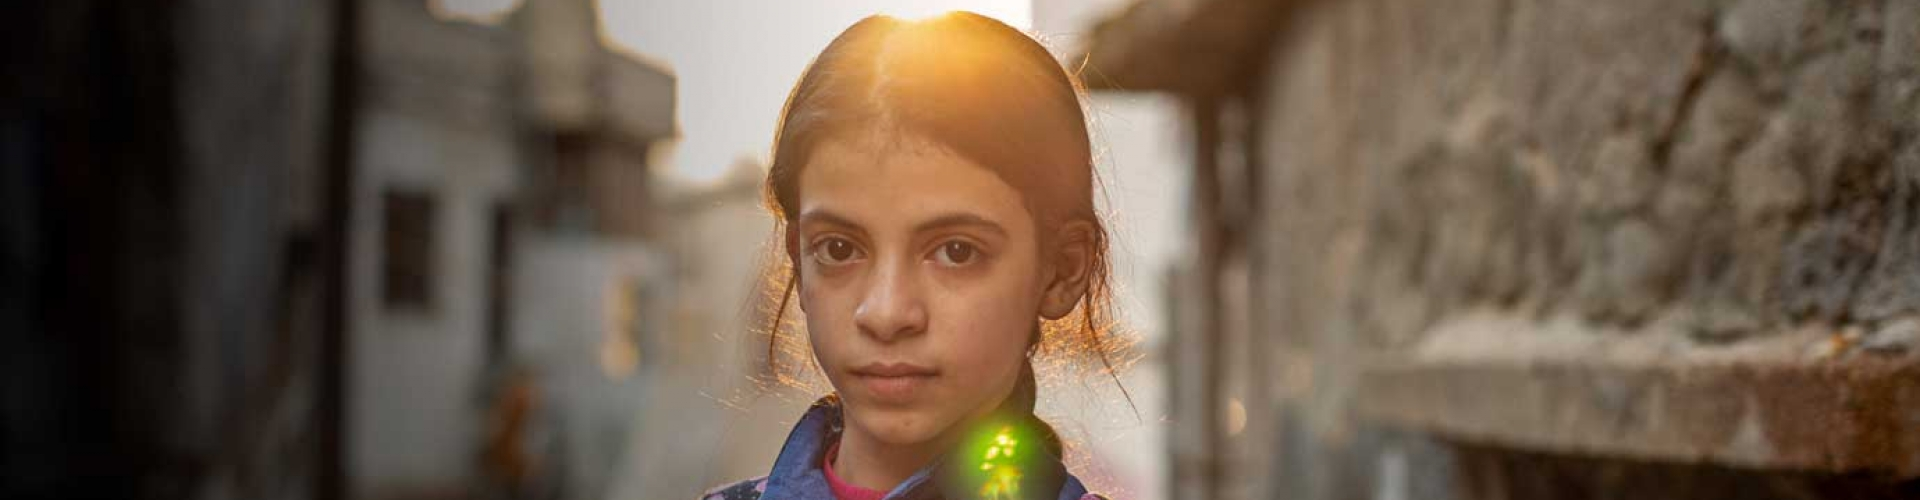 Nine years of conflict weigh heavily on Syrian refugee girl